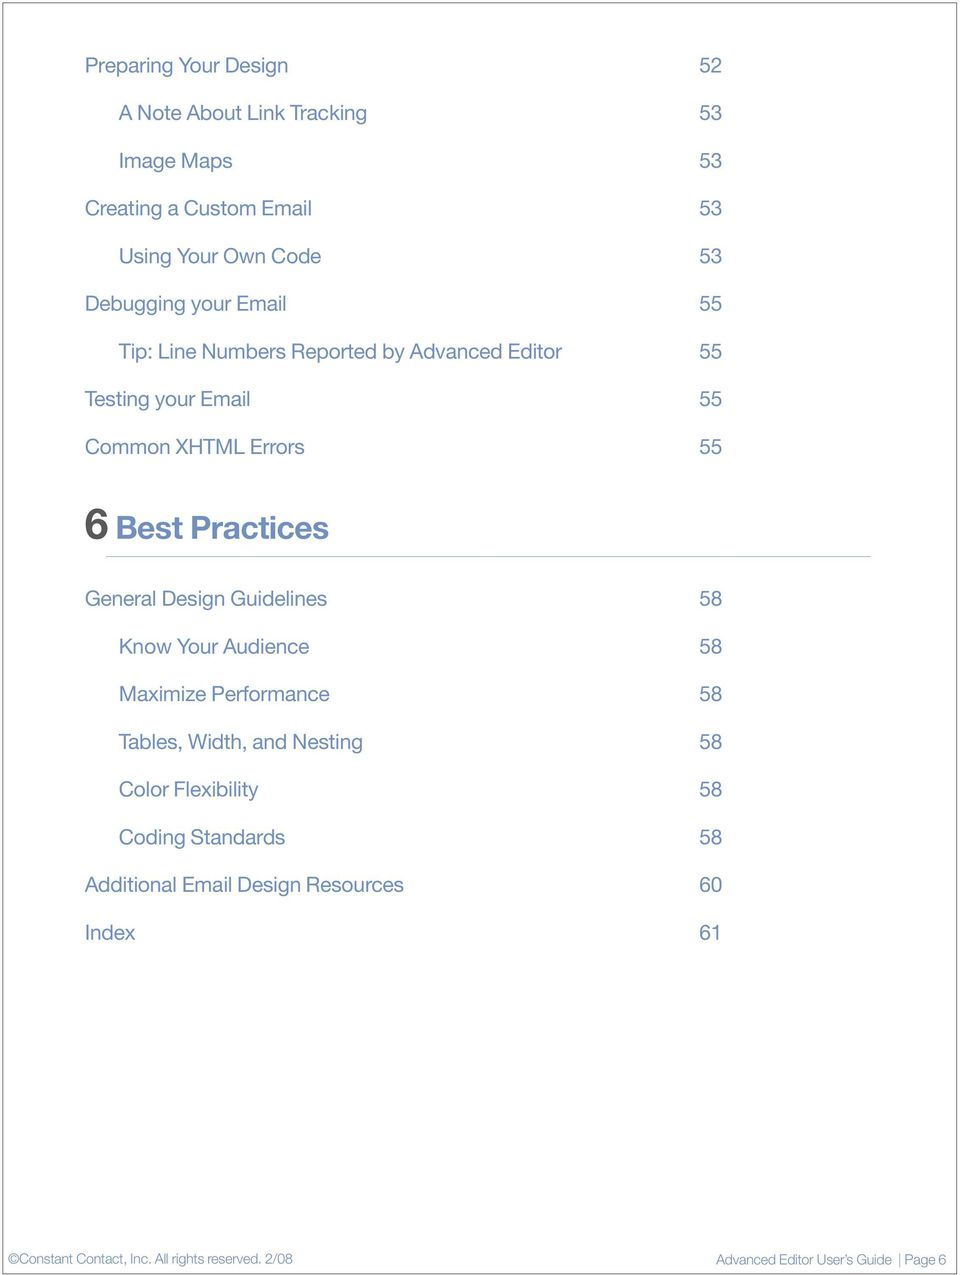 Best Practices General Design Guidelines 58 Know Your Audience 58 Maximize Performance 58 Tables, Width, and Nesting 58